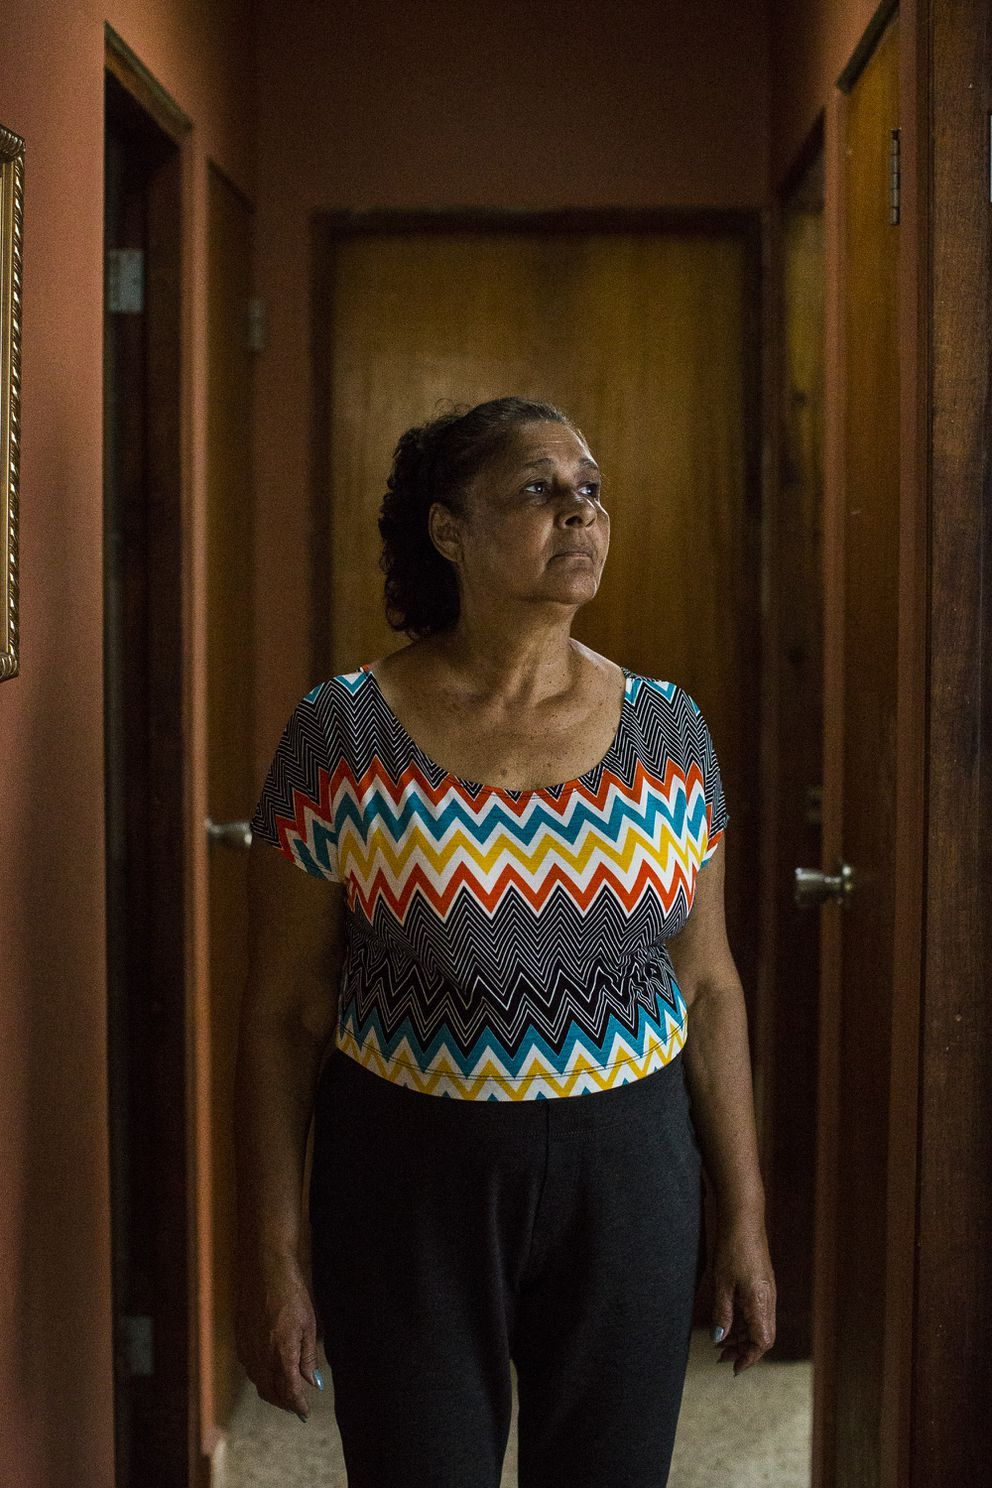 Norma Ramos' home has been without power for more than five months. Because of her husband's poor health, the two joined family members in the continental U.S. during the first months after the storm. But she decided to return and plans to stay in the island. (Photo for The Washington Post by Erika P. Rodriguez)